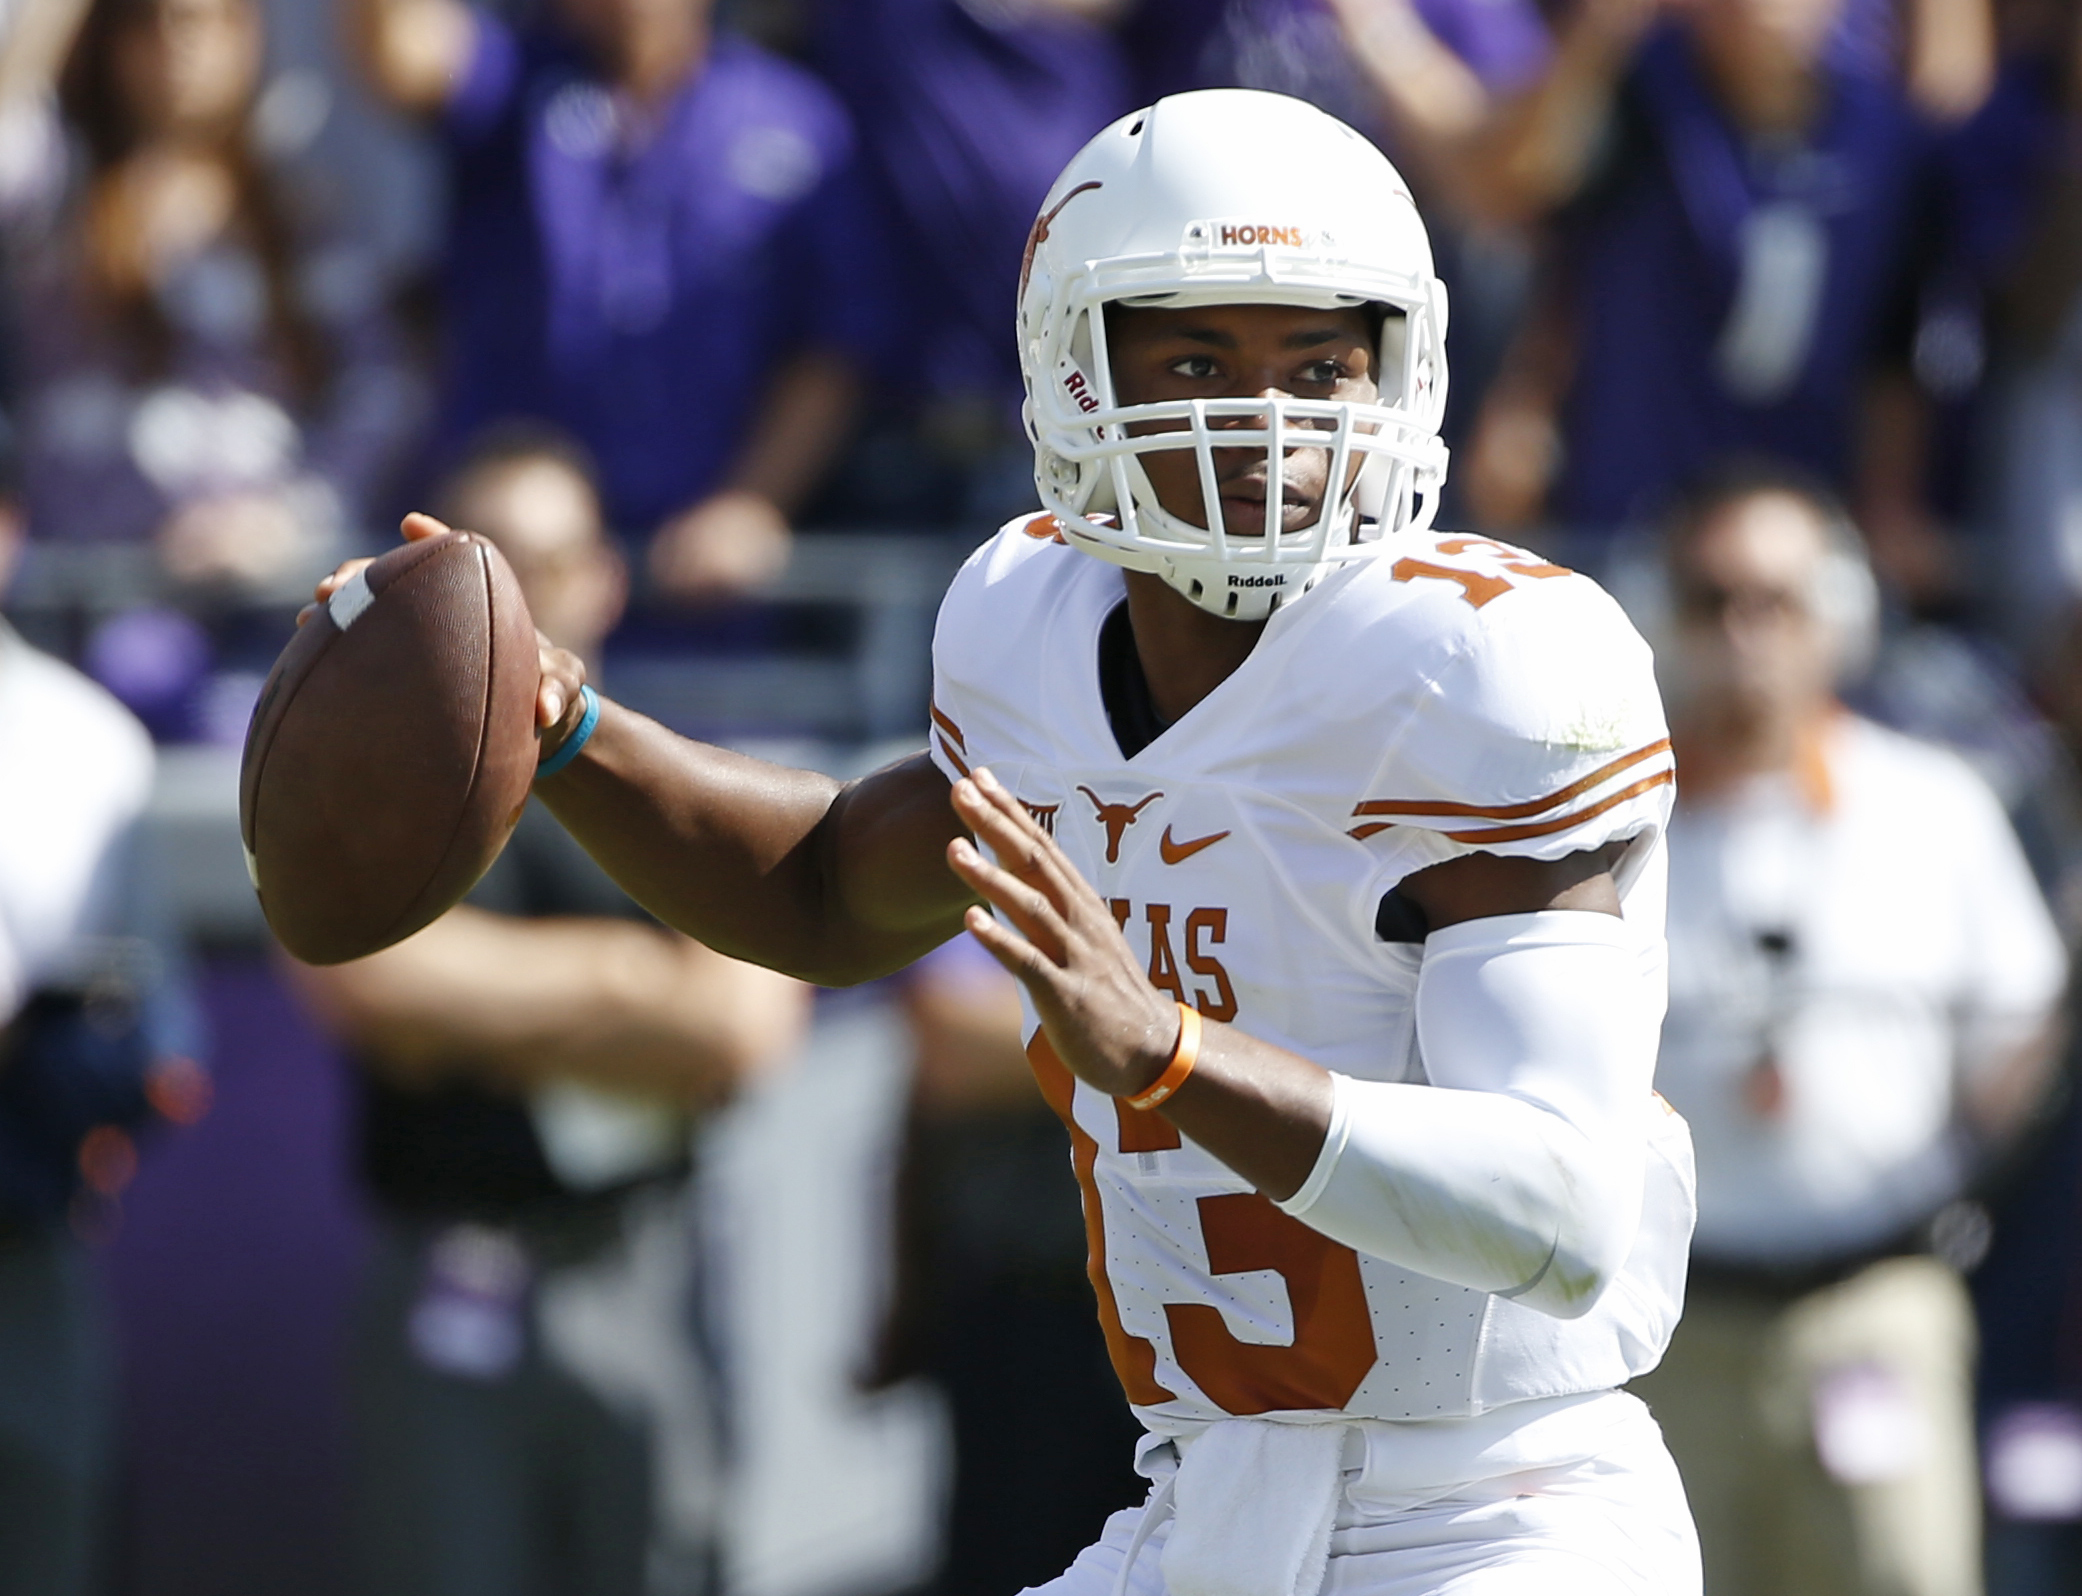 FILE - In this Oct. 3, 2015, file photo, Texas quarterback Jerrod Heard (13) looks to throw in the first quarter against TCU in an NCAA college football game, in Fort Worth, Texas. The Texas quarterback competition dominating Longhorns training camp has l